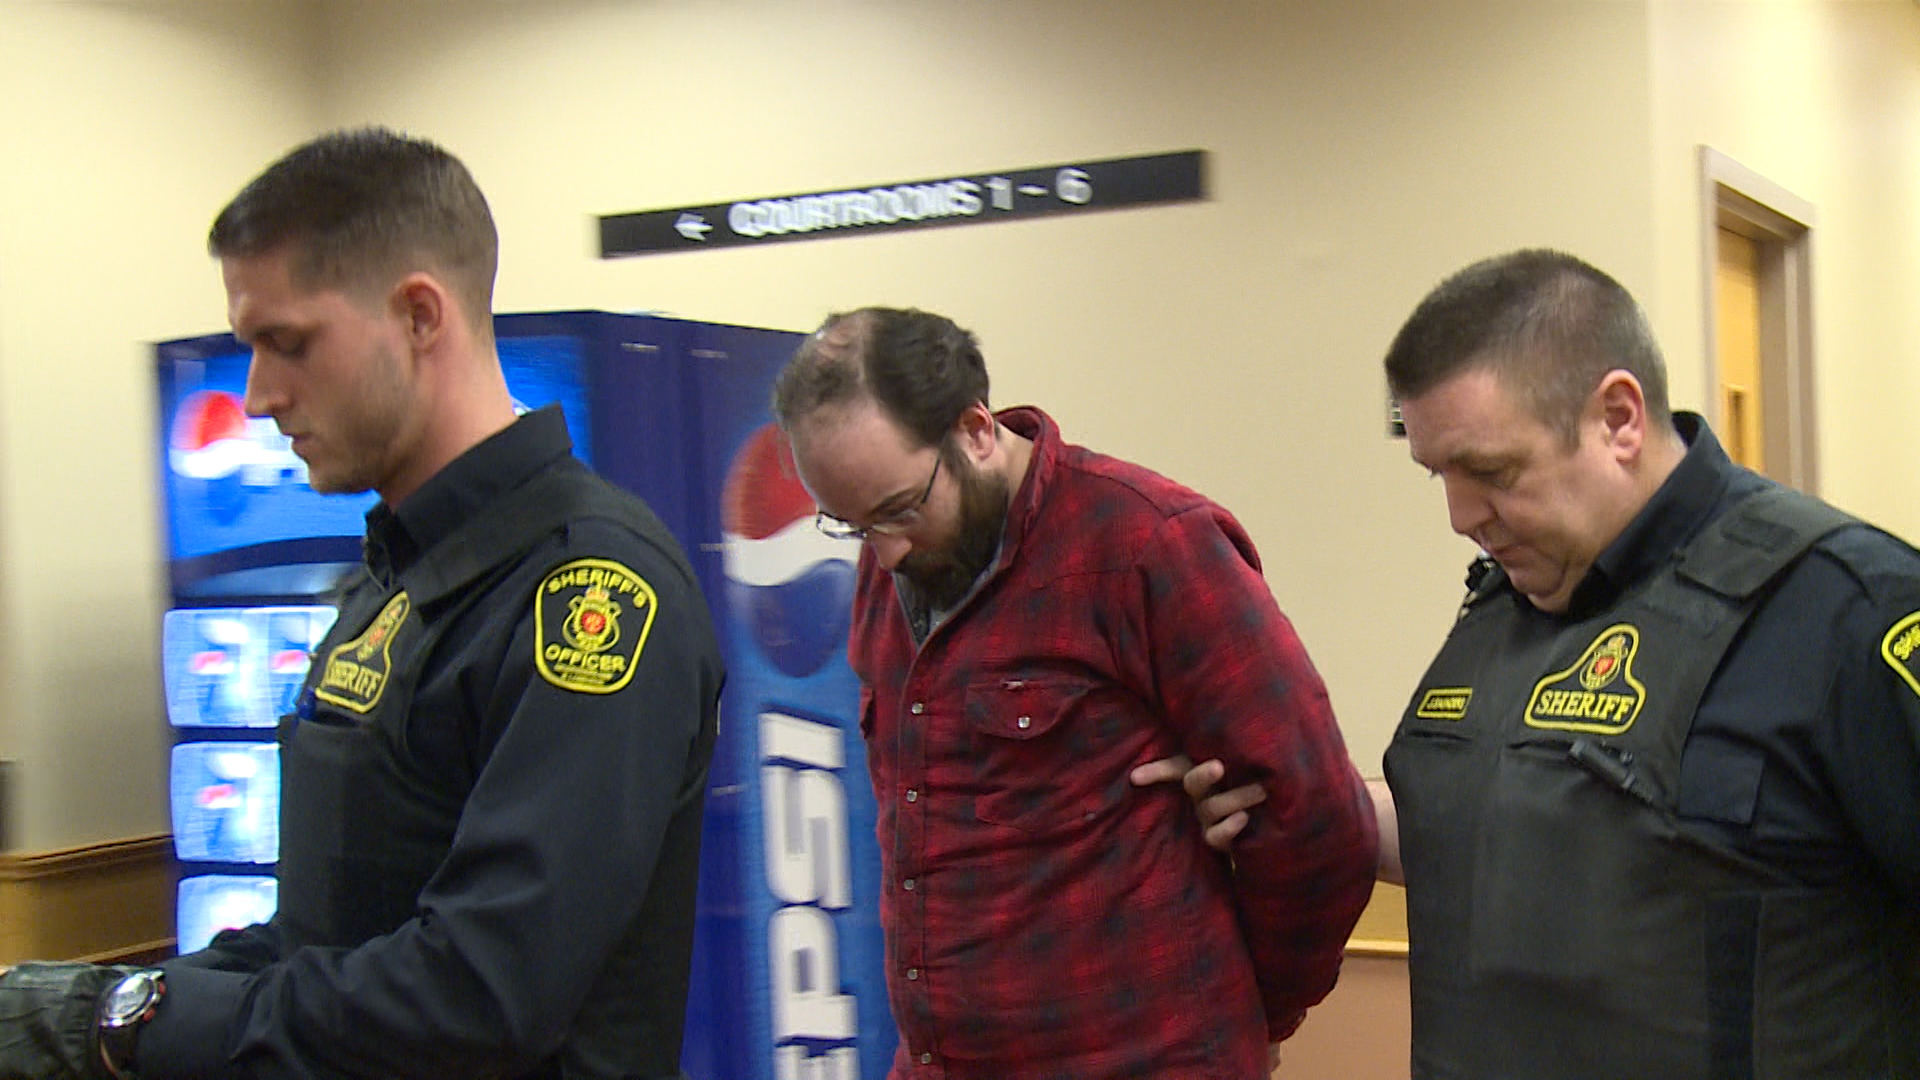 Nathaniel Somerton, 33, was arrested January 10 in St. John's (Photo: Ryan Harding/NTV)